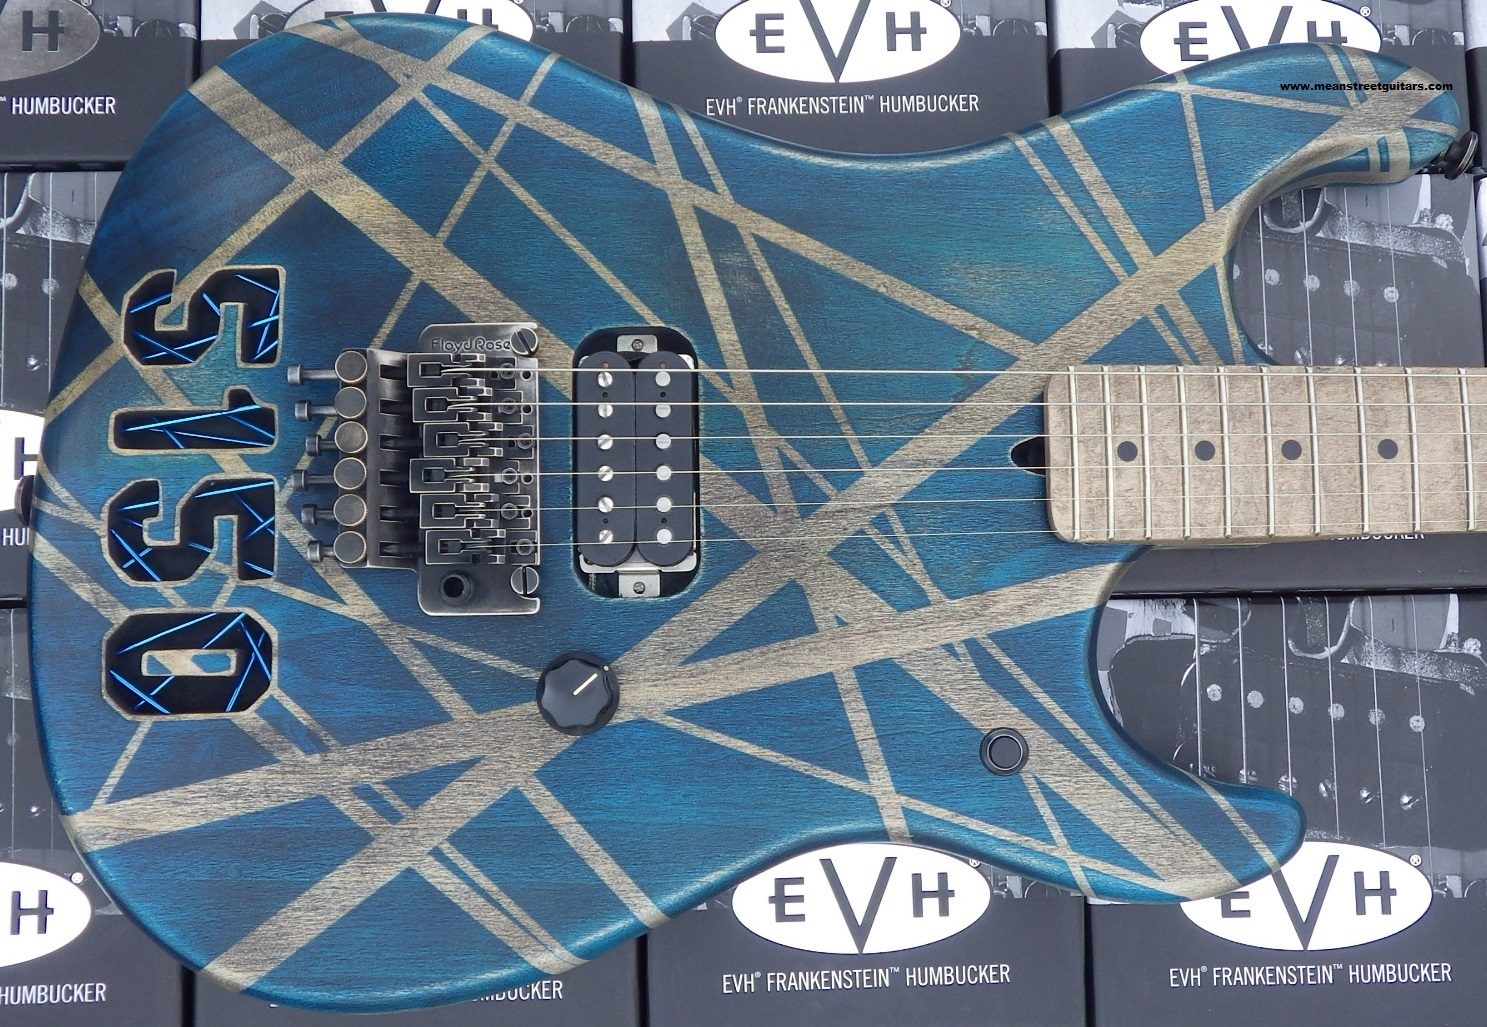 Mean Street Guitars Industrial 50 1 50 Pipeline Blue 002 pic 2.jpg